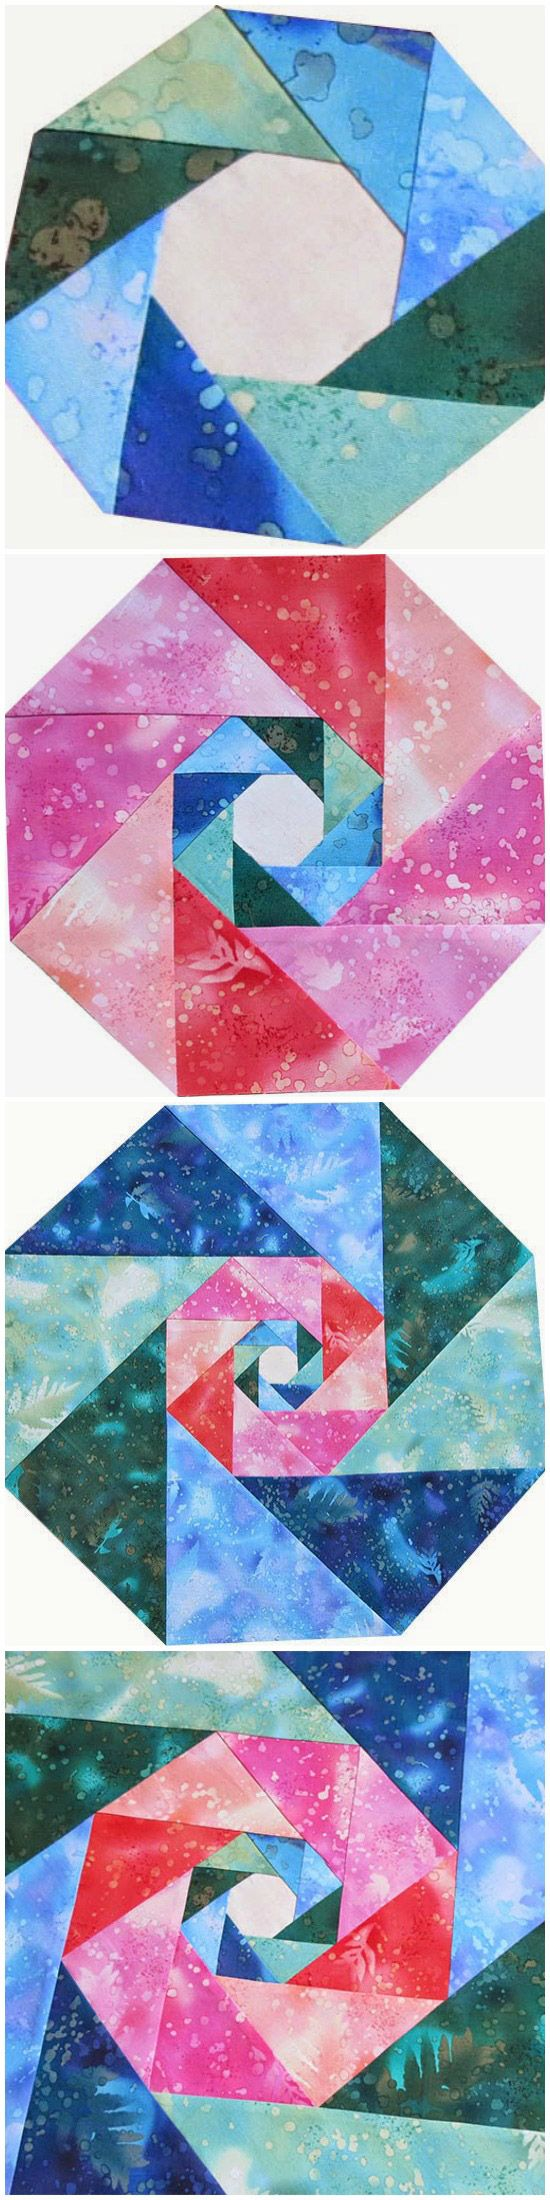 Learn to piece octagons from triangles! The intricate design is a simple piecing technique repeated three times. via @getagrama